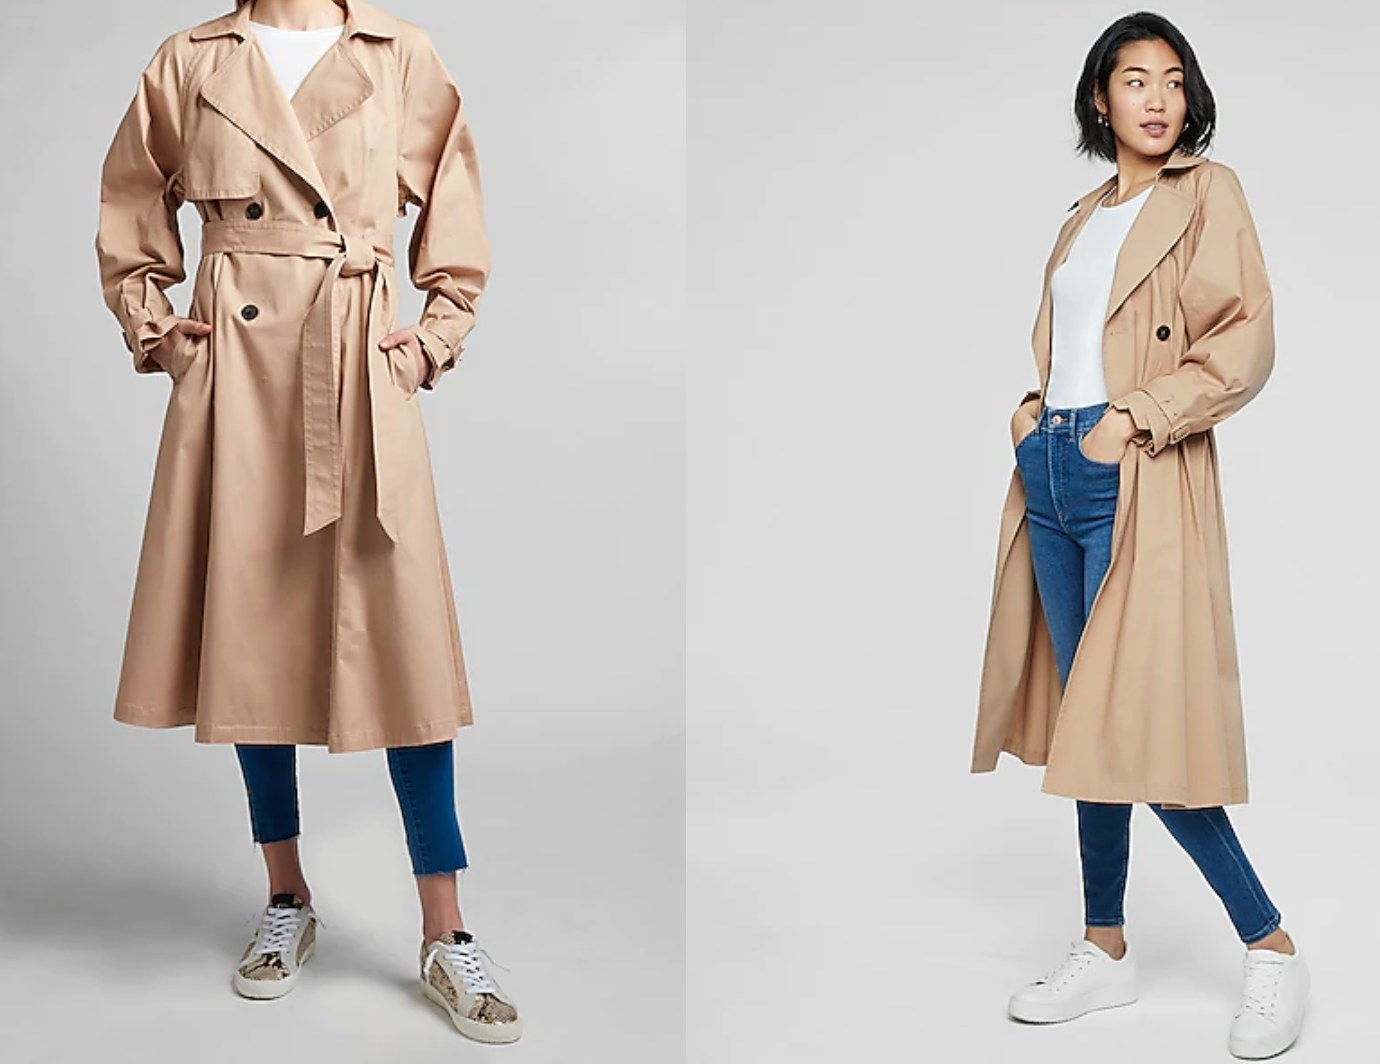 model wearing the pleated trench coat in beige, both closed and open